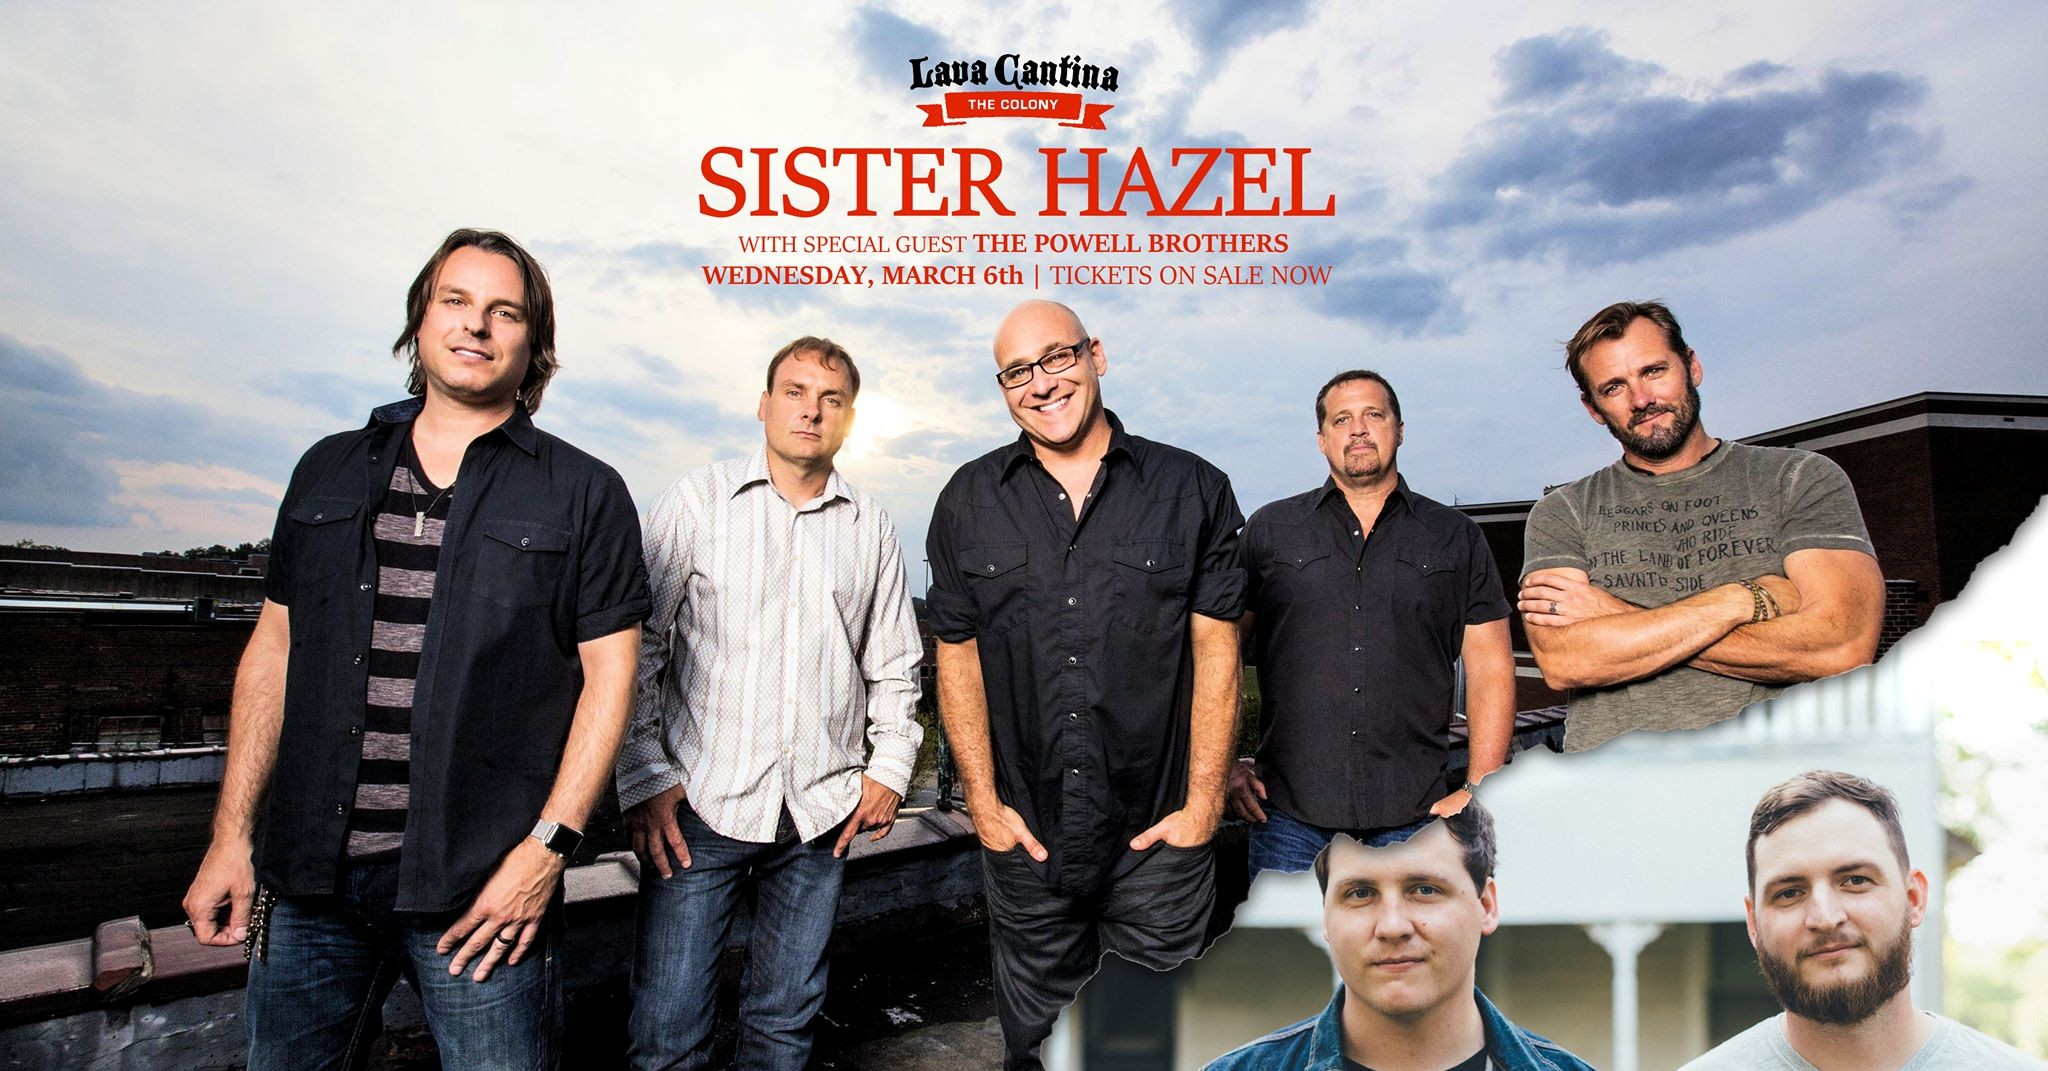 March 6 Calendar Más Populares Sister Hazel with the Powell Brothers Lava Cantina the Colony Of March 6 Calendar Más Recientes 2018 Calendar with Julian Dates Sample 2017 Calendar with Julian